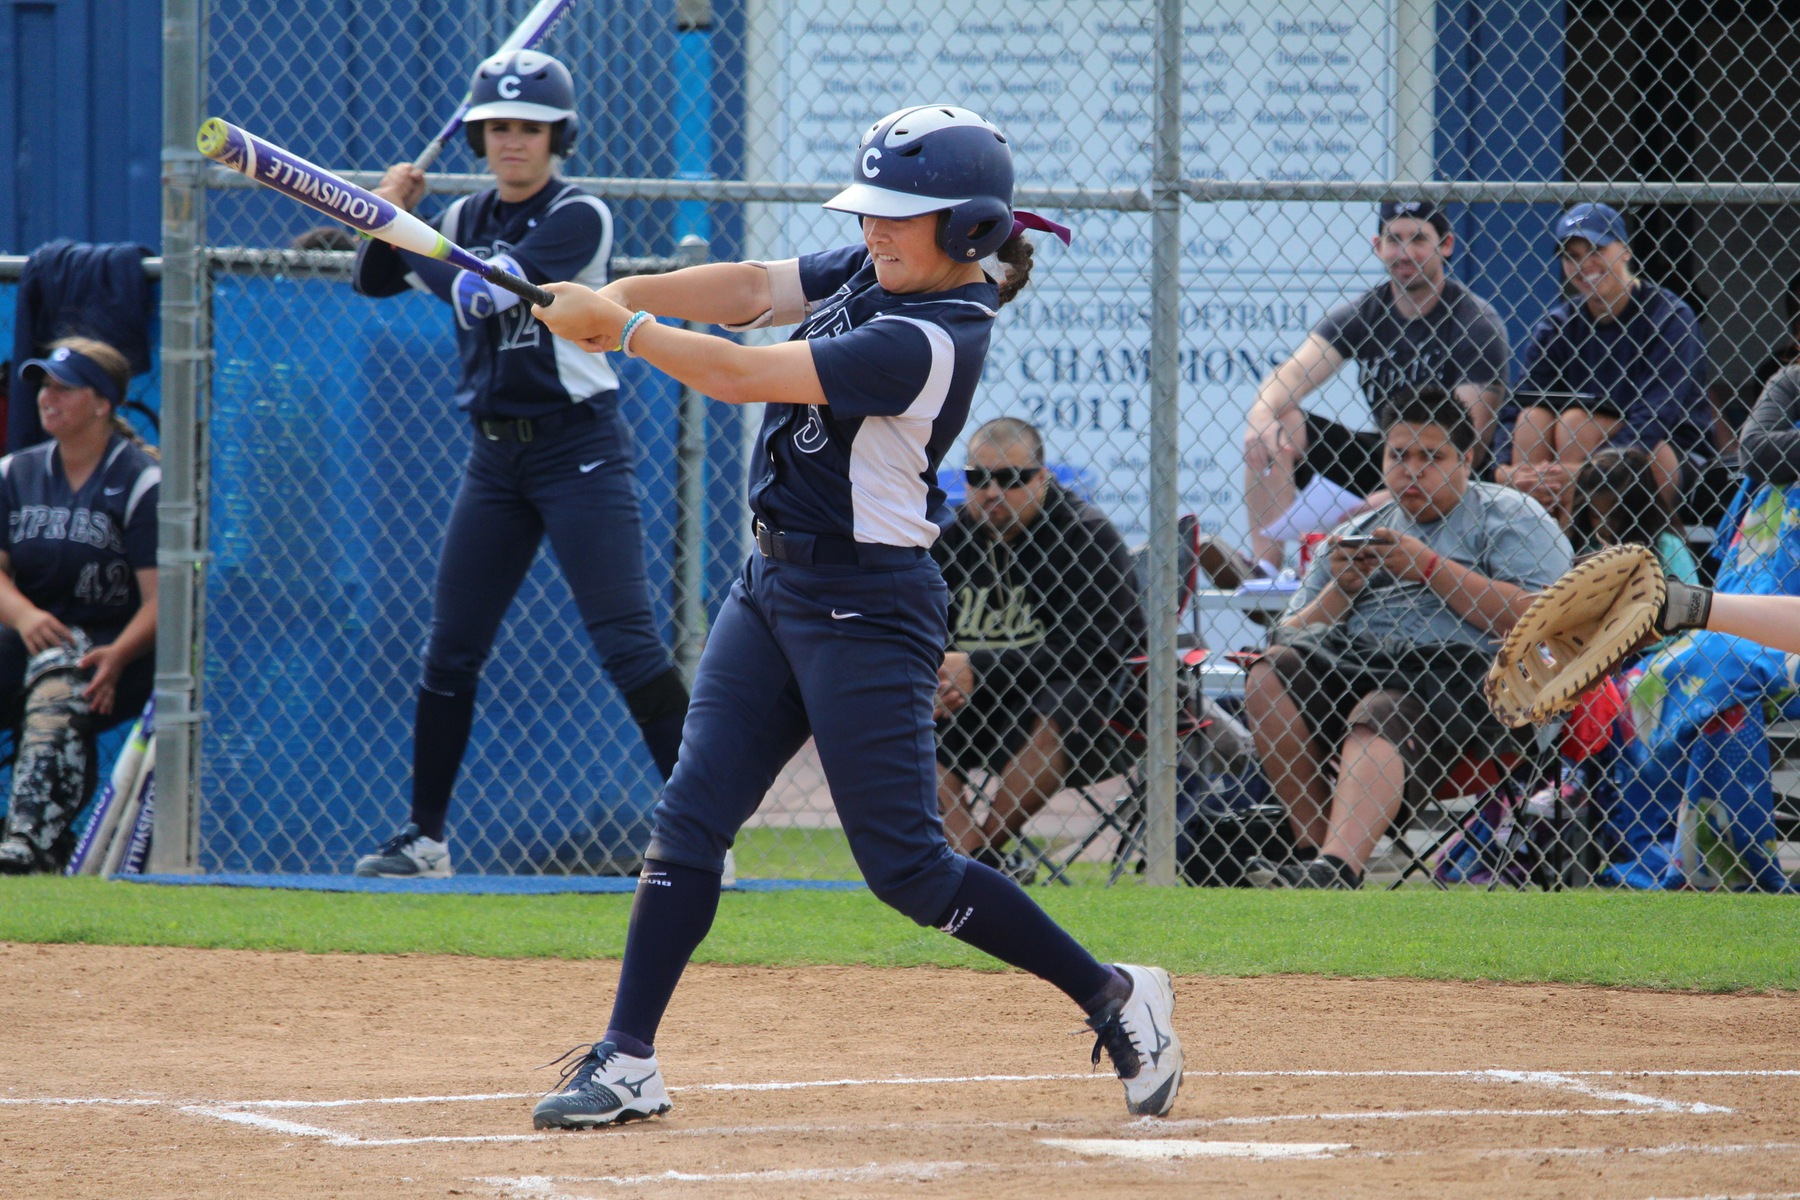 No. 2 Softball Notches 21st Consecutive Victory with 8-0 Win Over Orange Coast